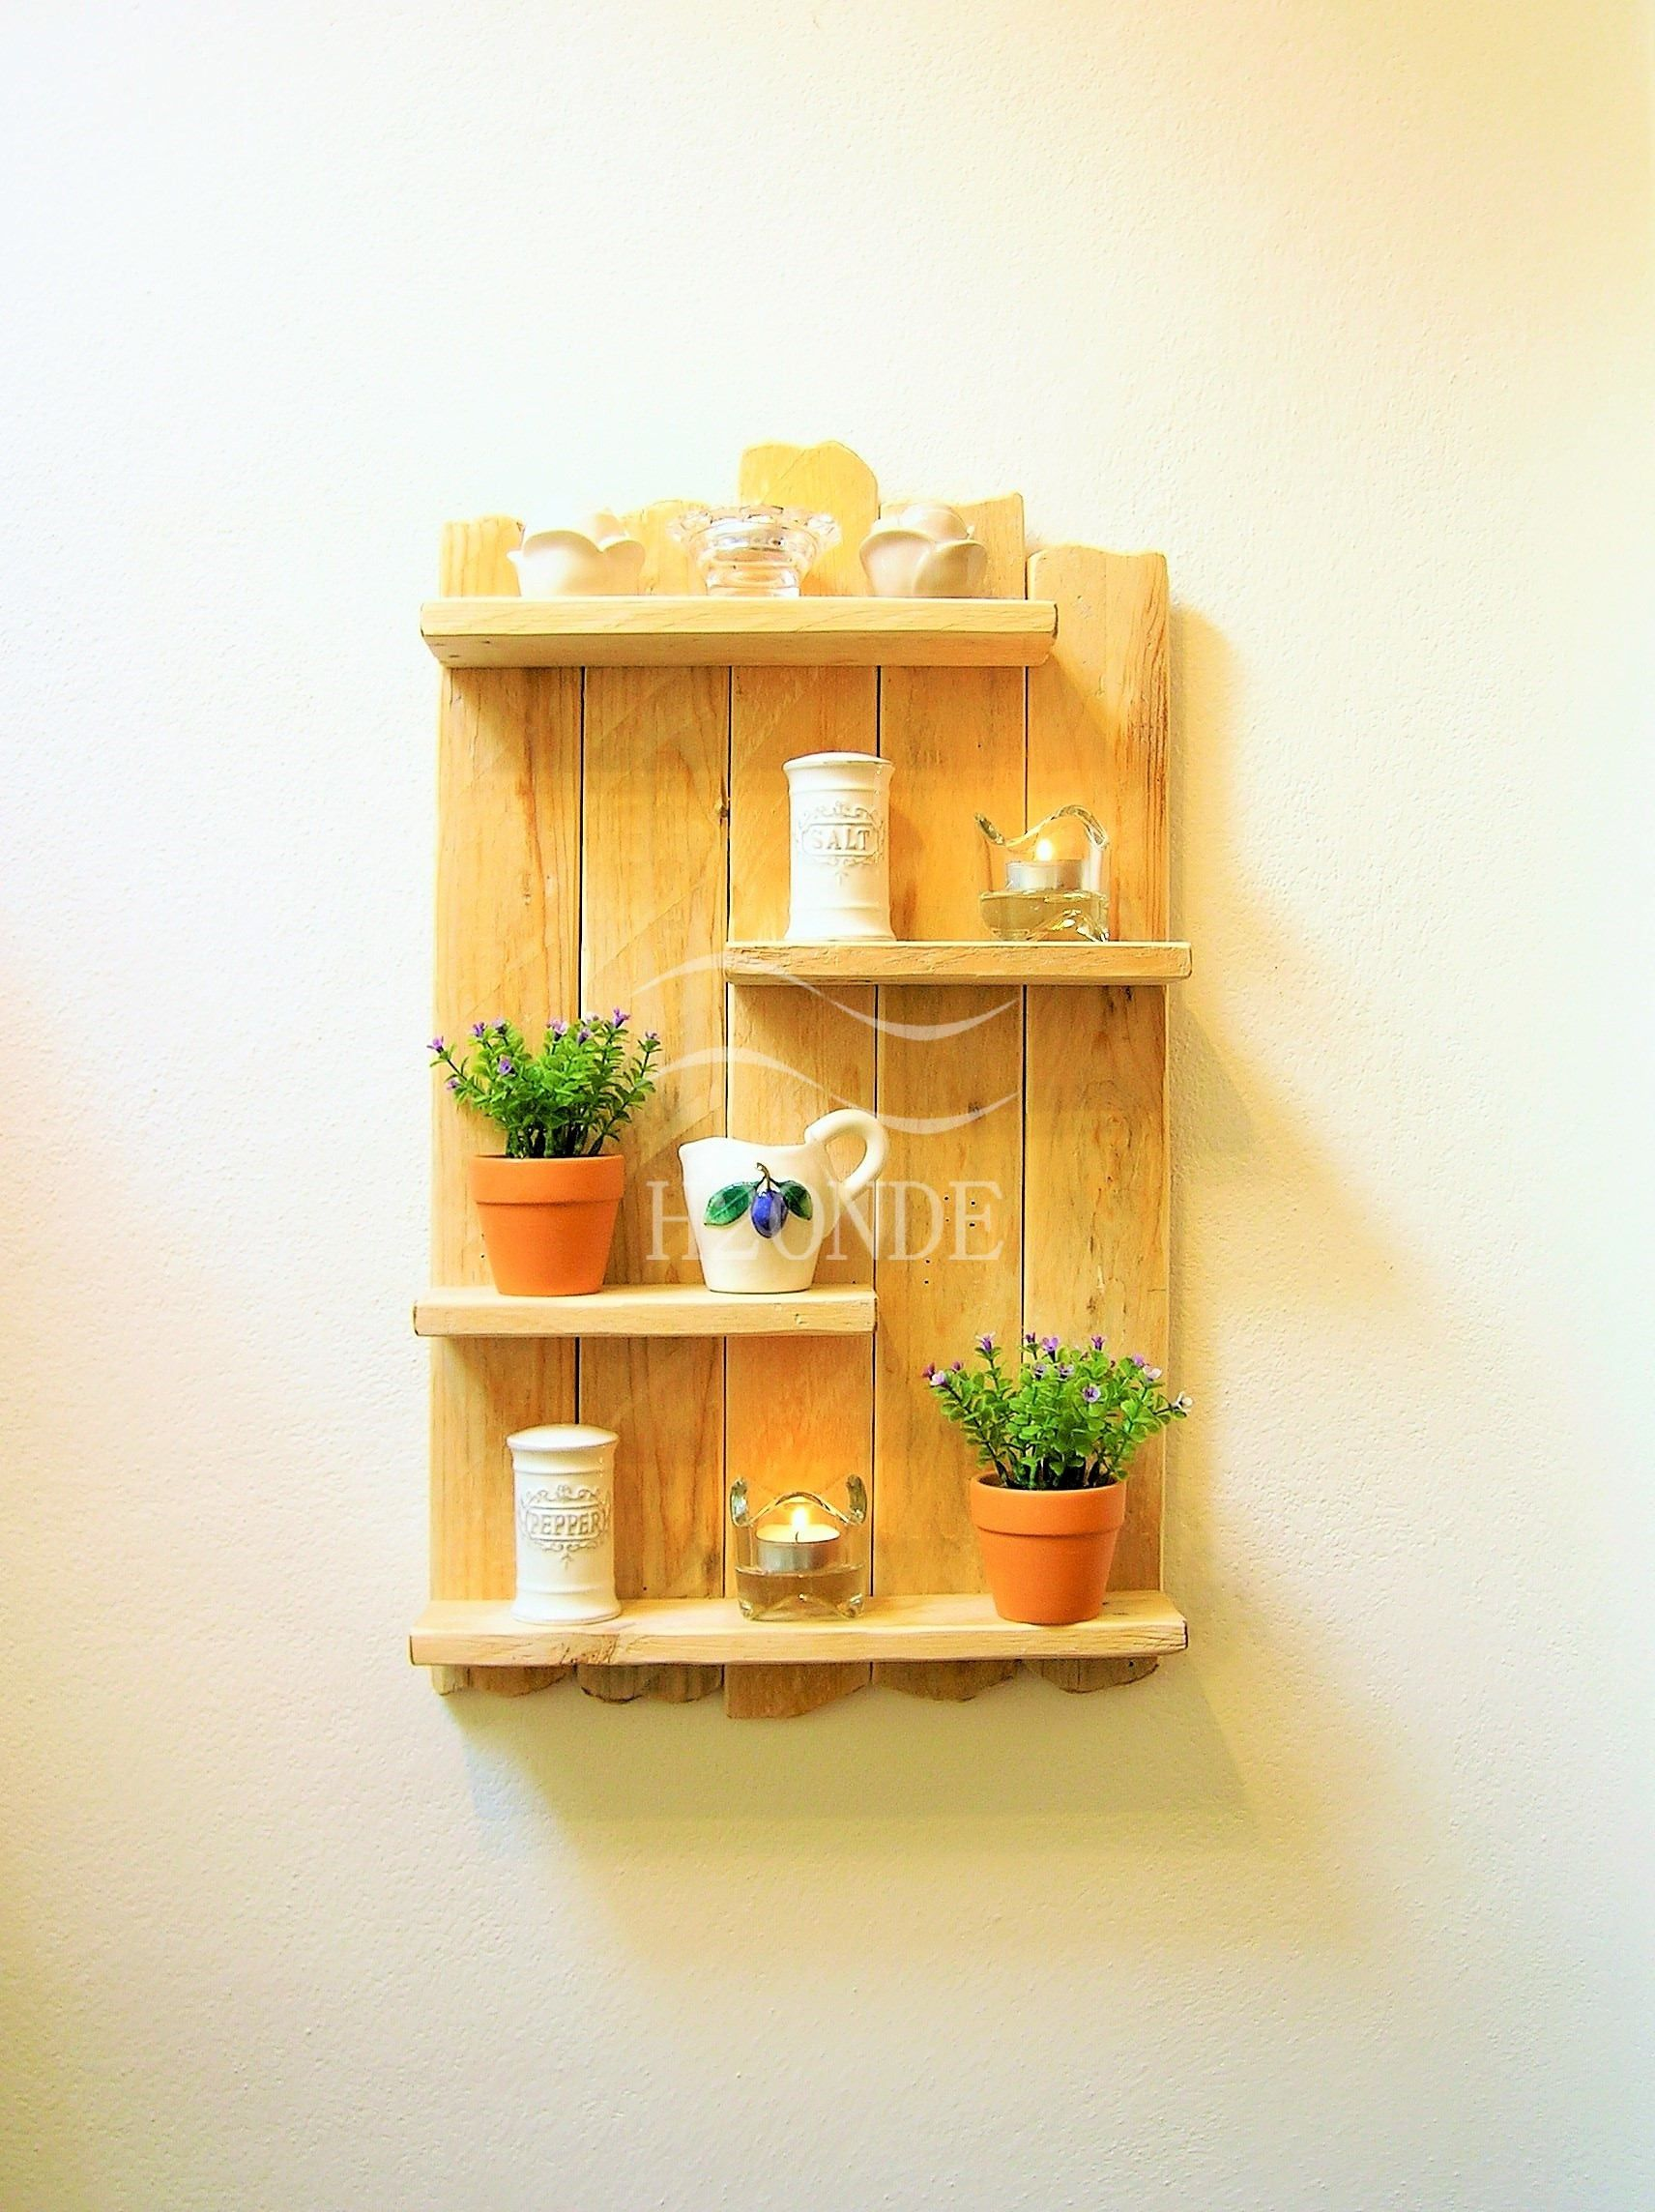 Pallet wood shelf reclaimed shelves bathroom driftwood wall decor ...